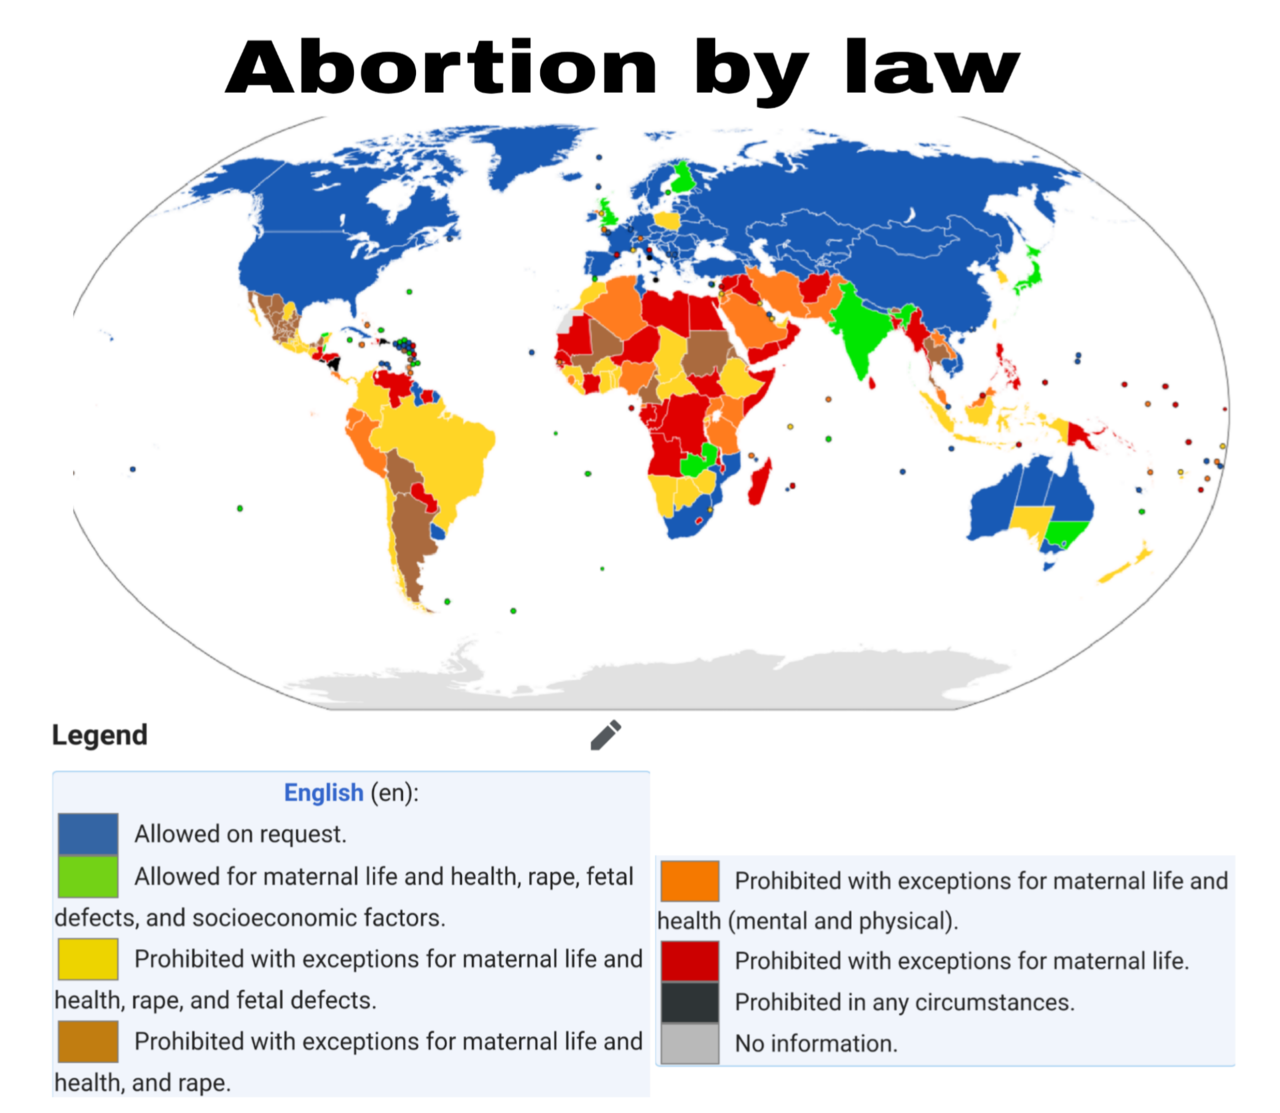 Abortion by law